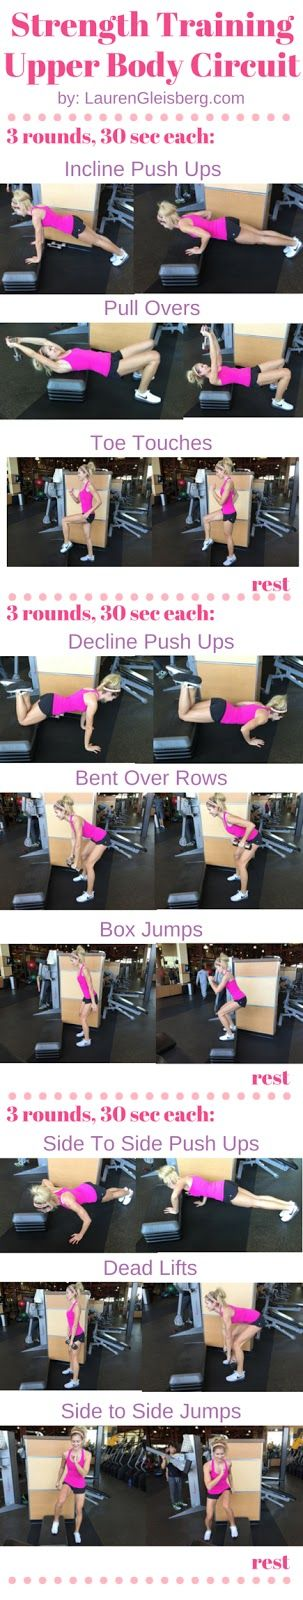 "Upper Body Circuit (#LGLoveYourselfFit - ""JOY"") - 2/20"